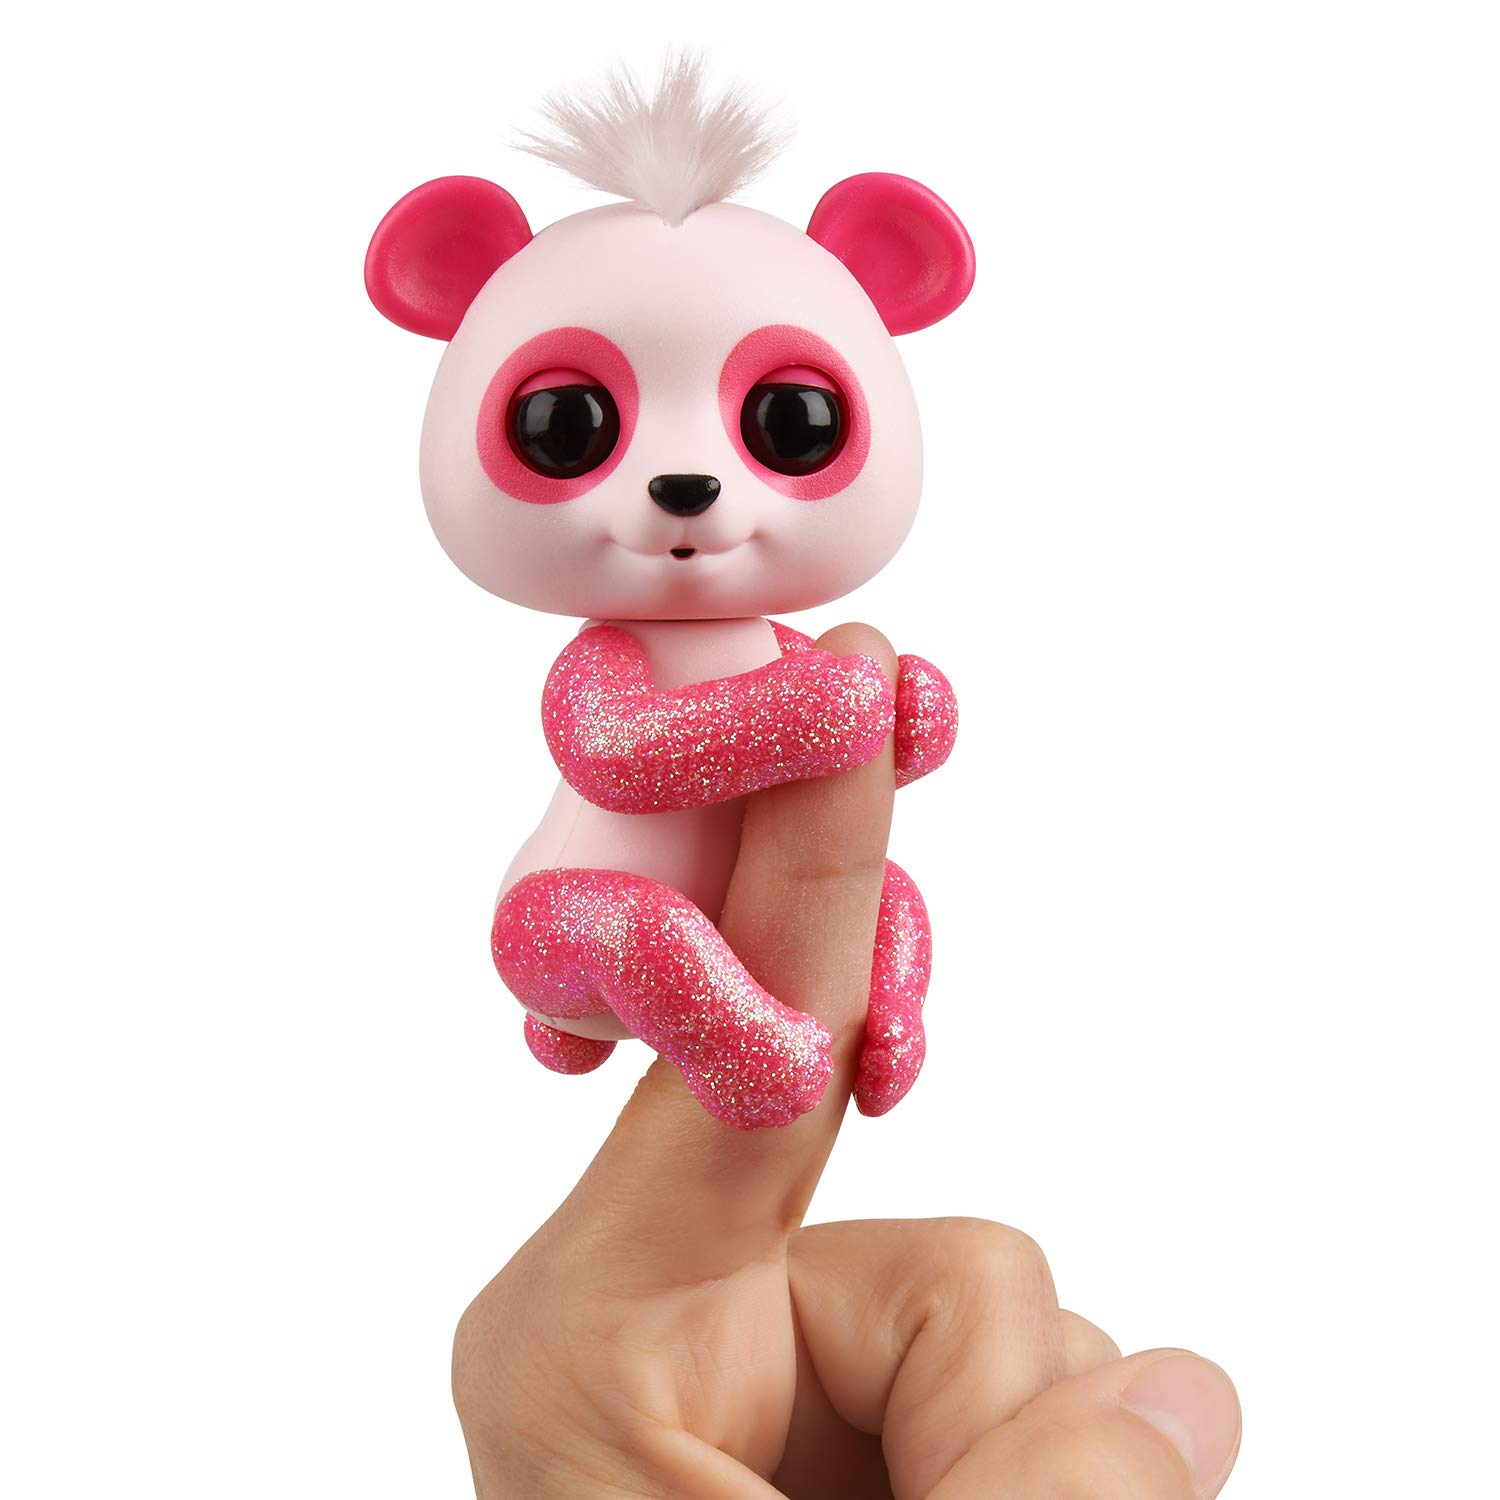 WowWee Fingerlings Glitter Panda - Polly - Interactive Collectible Baby Pet, Pink 3561